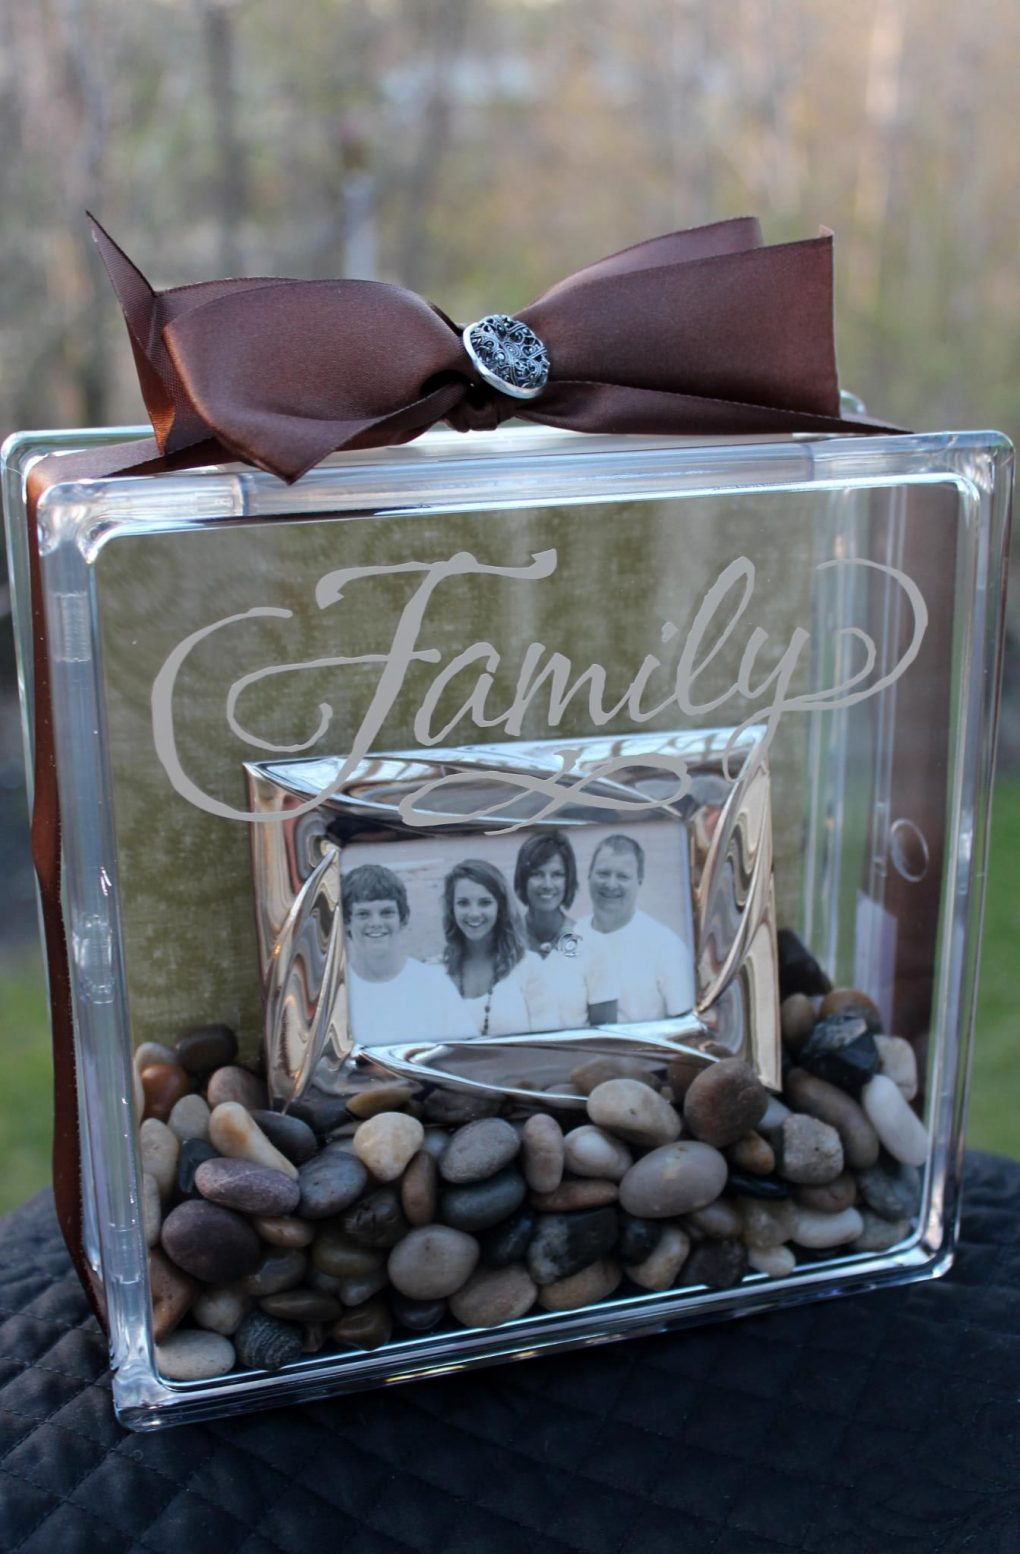 Glass block crafts-block filled with small pebbles and a framed family photo. Bow is tied around the block.